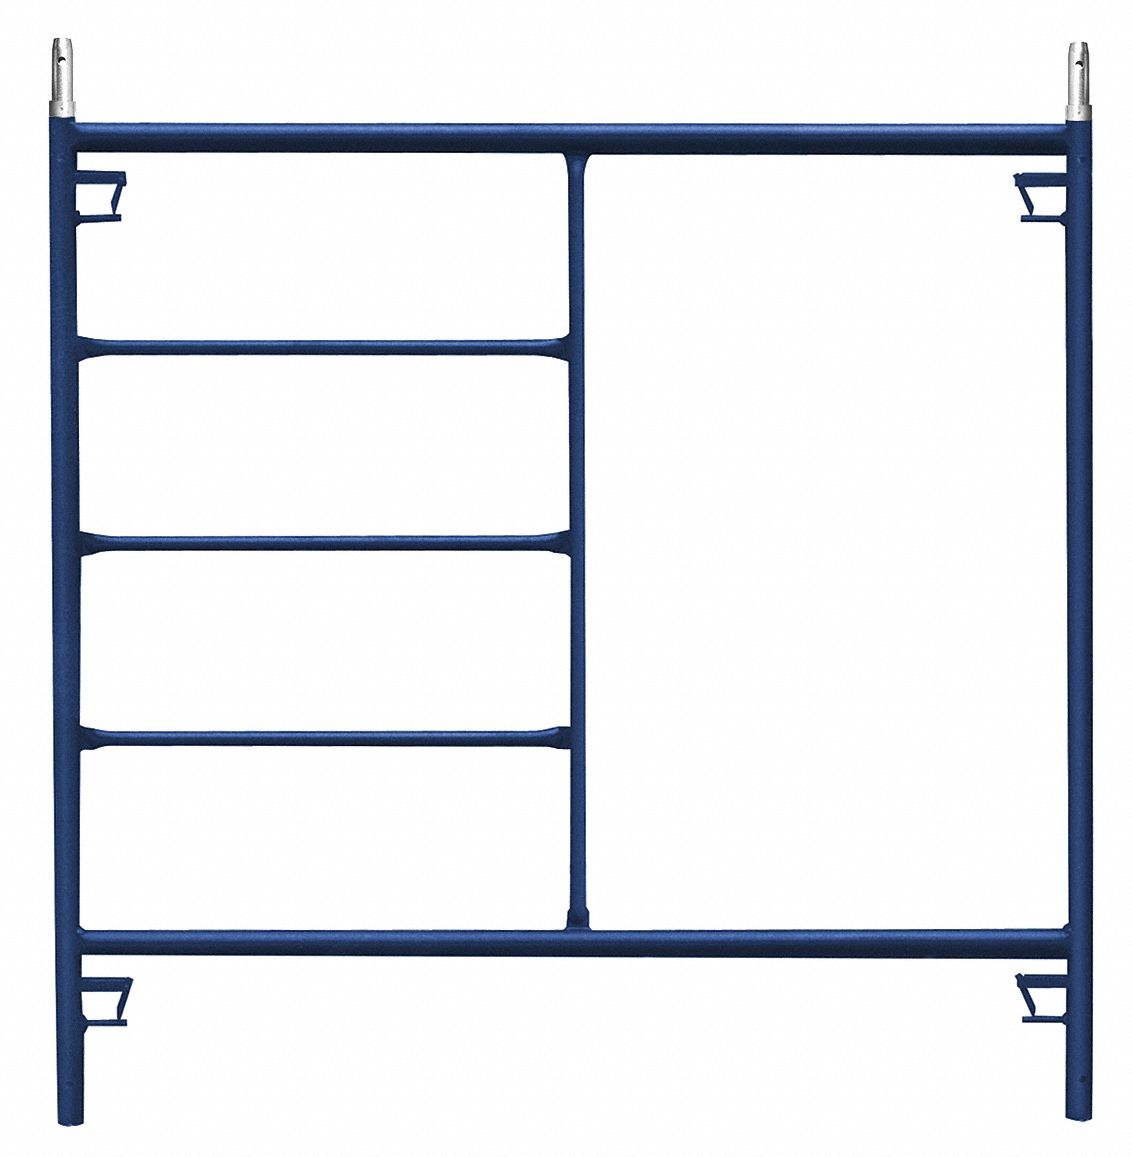 Scaffold Frame, Steel/Plastic, 60 in Overall Height, 5,127 lb Load Capacity